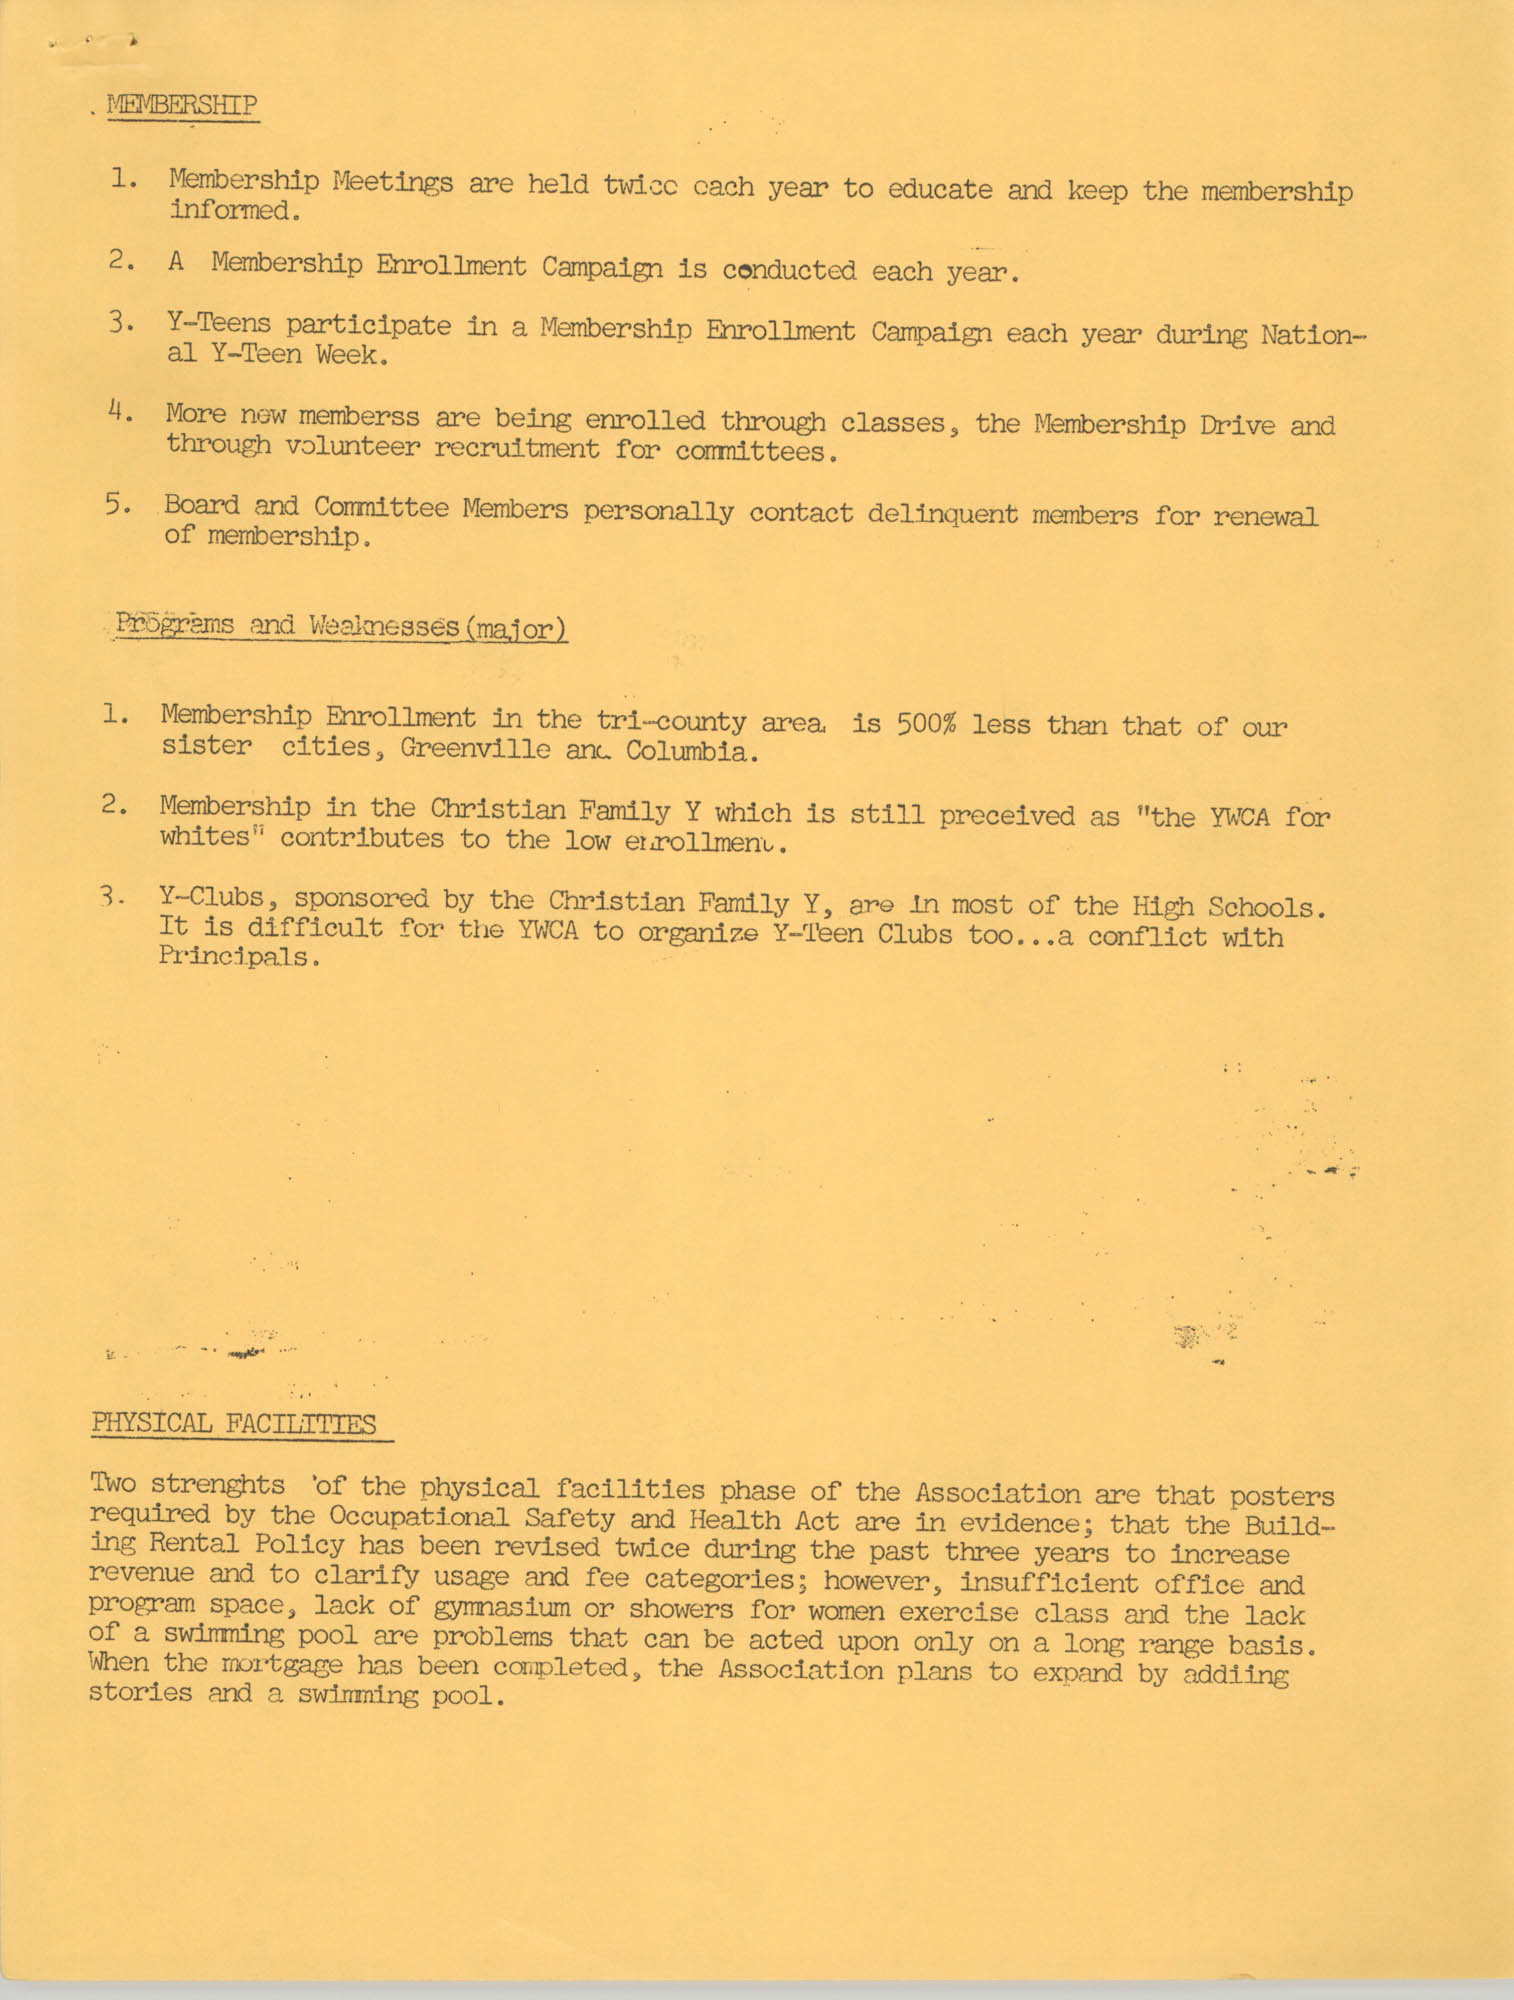 Y.W.C.A. of Greater Charleston Summary Report for Administration, Page 3